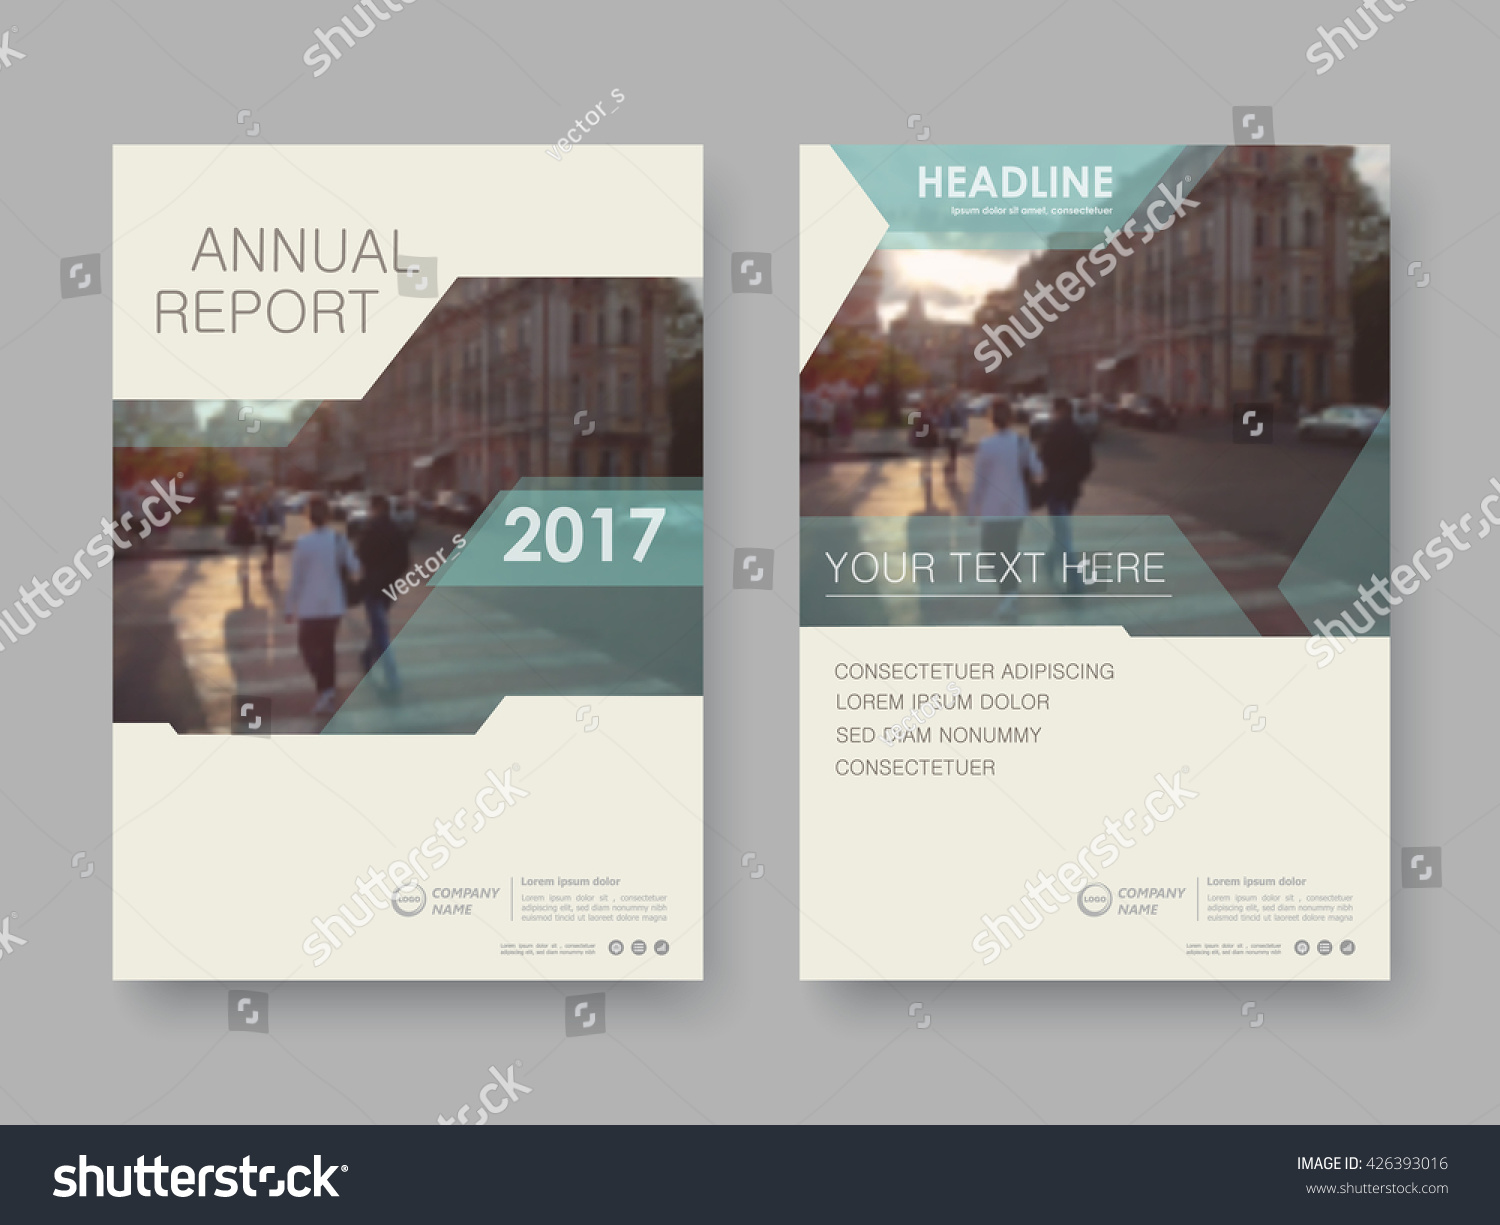 annual report flyer presentation brochure front stock vector annual report flyer presentation brochure front page report book cover layout